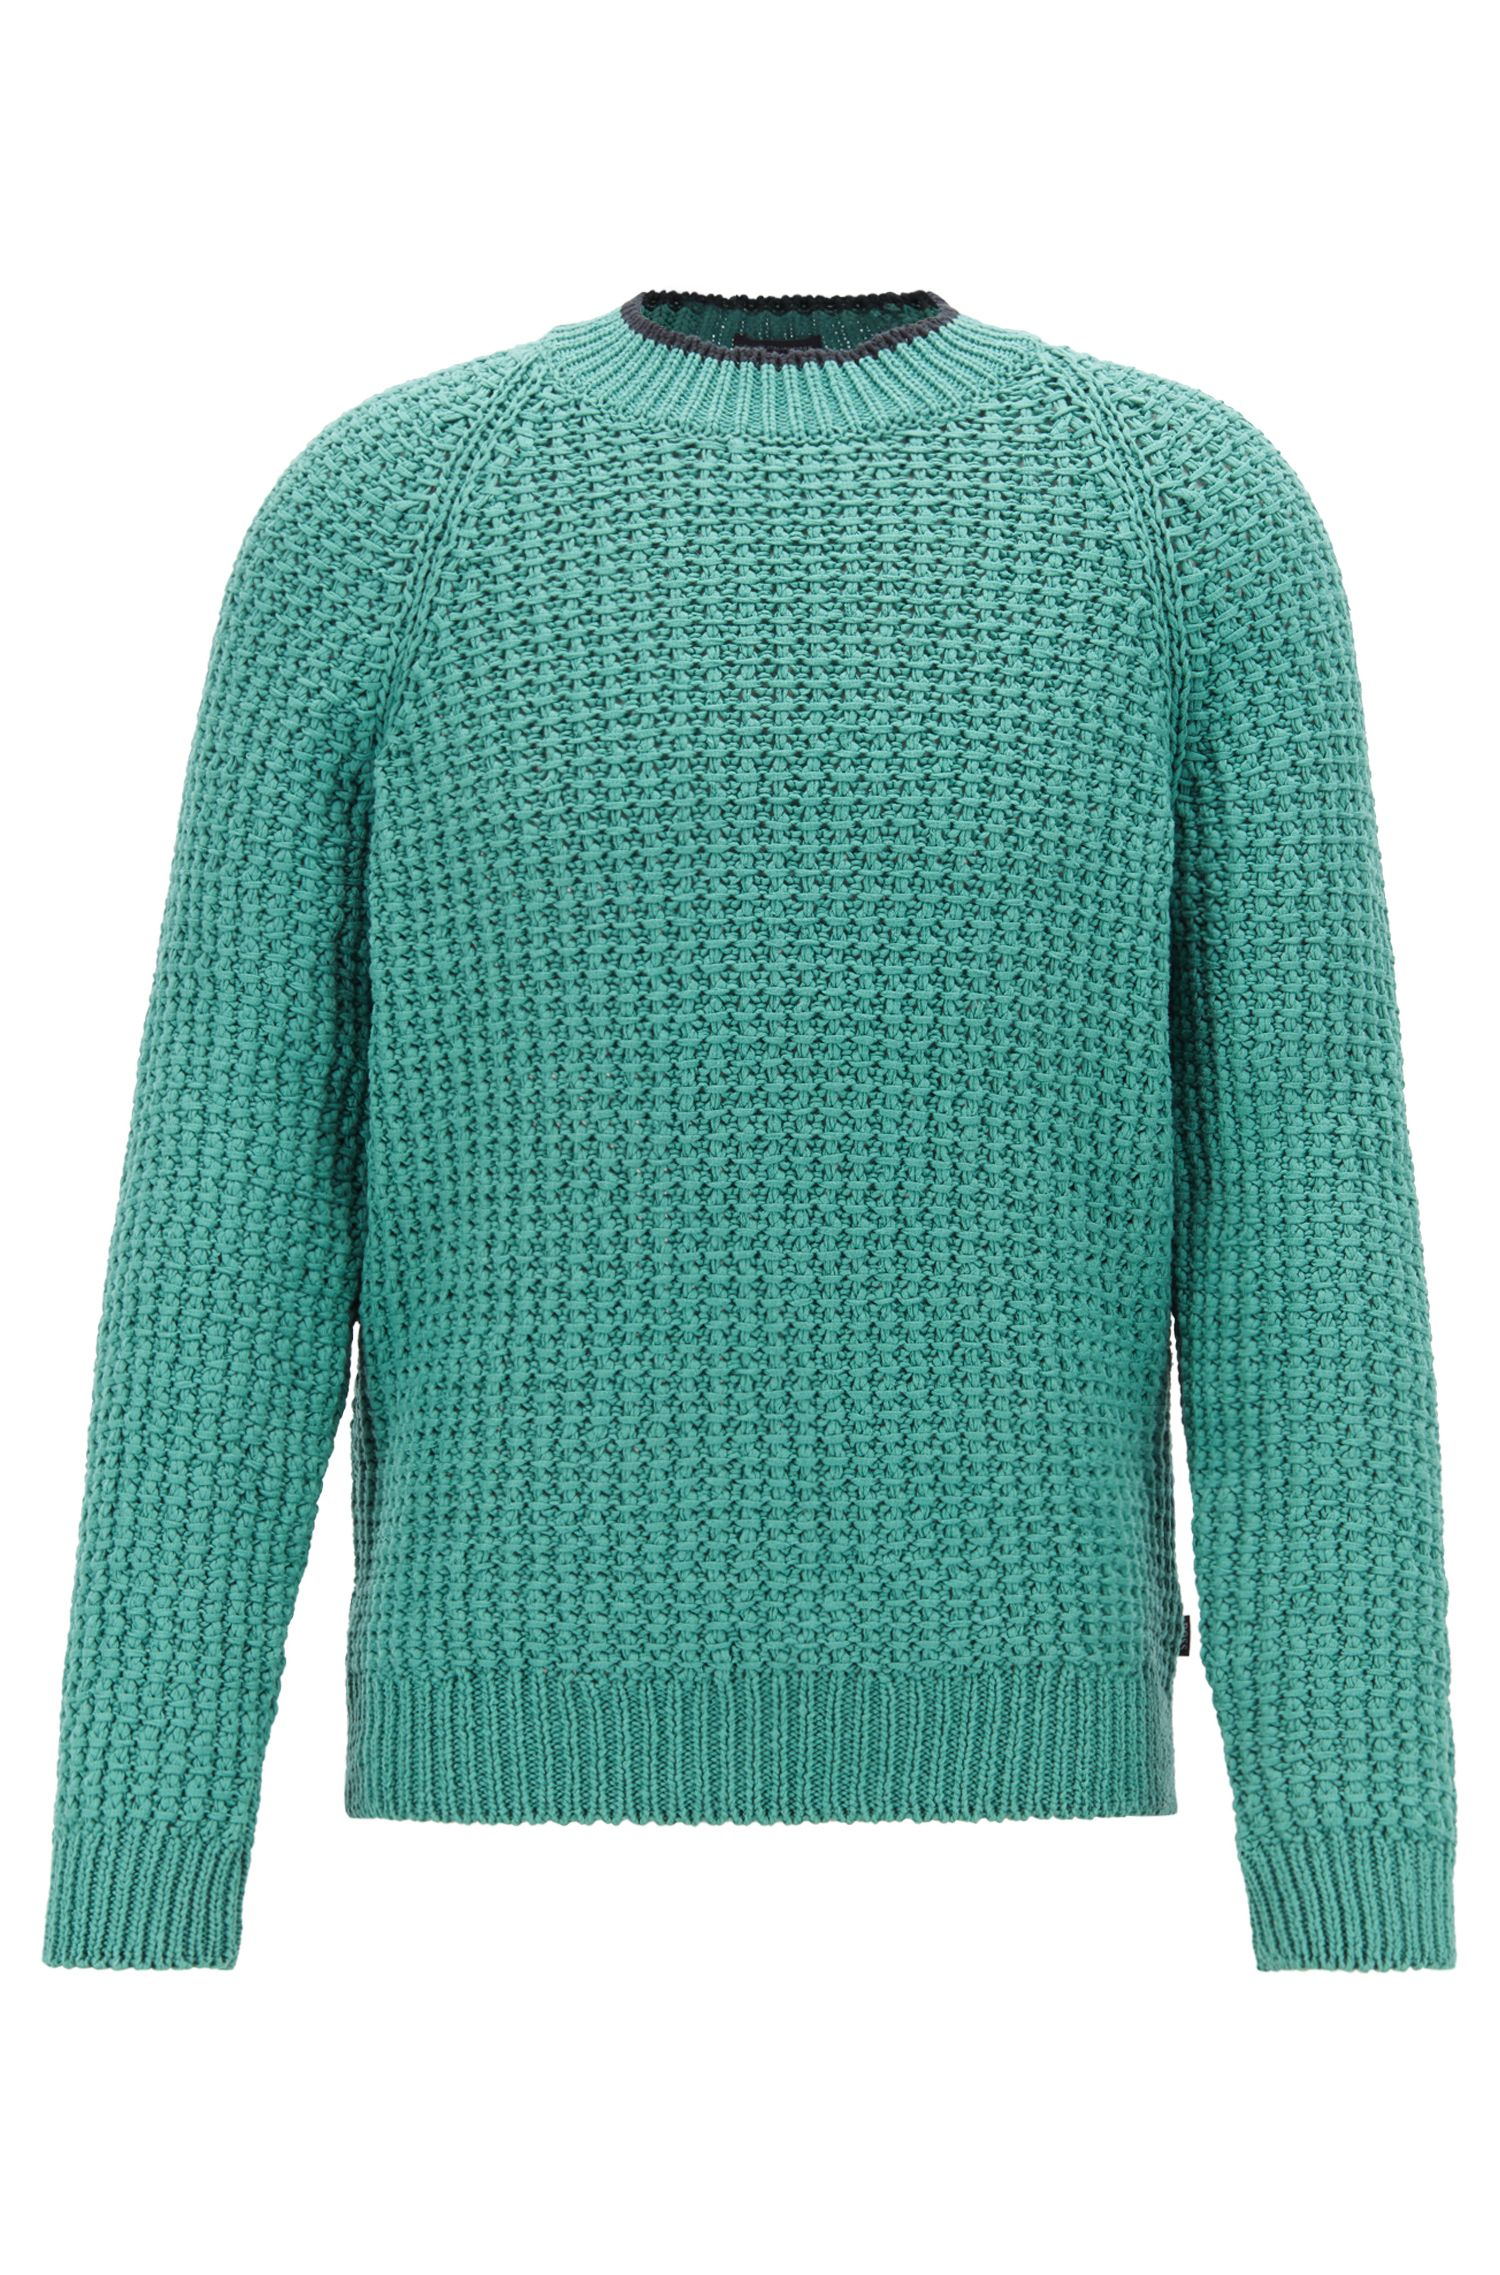 Crew-neck sweater in knitted cotton with contrast tipping, Light Green